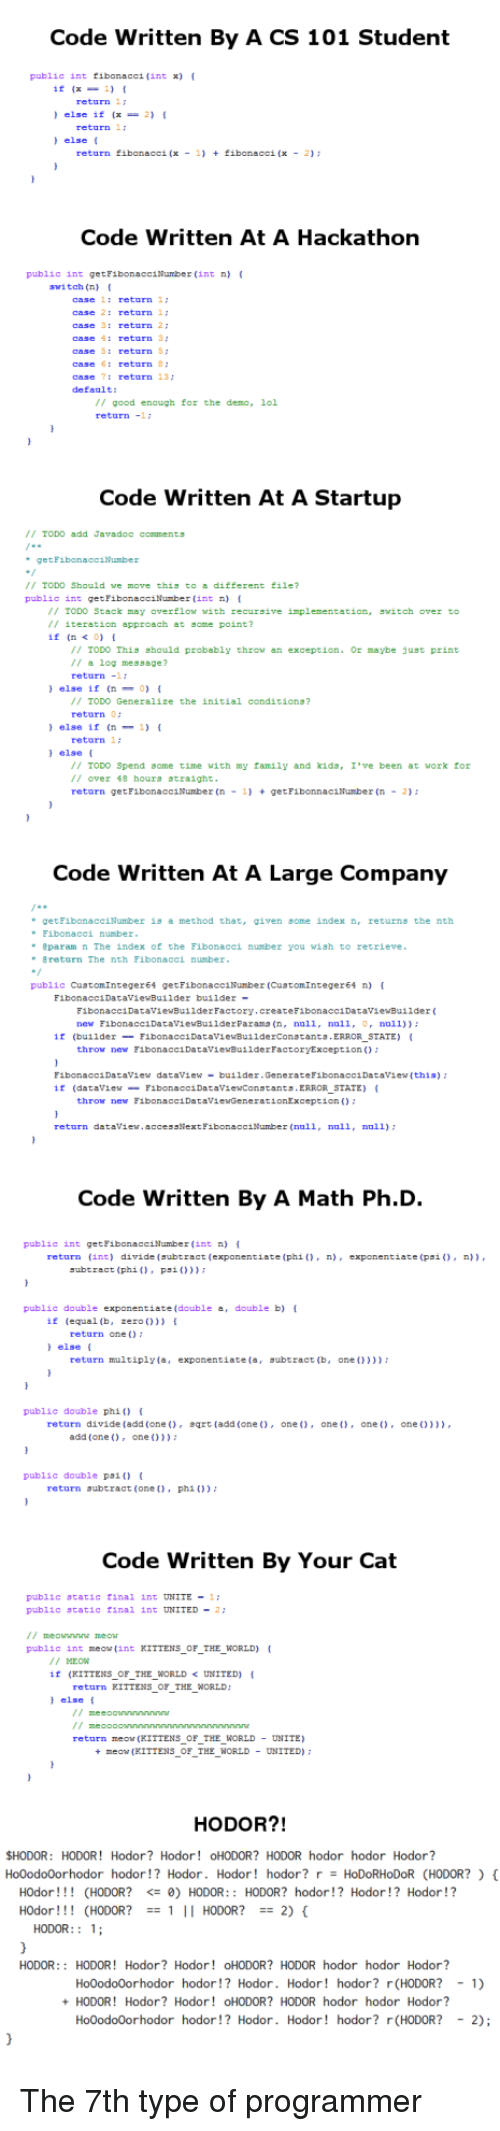 """demo: Code Written By A CS 101 Student  public int tibonacci (int x)  (x1)  else if (x-2)  else  return 1:  return 1  return fibonacci(x- 1) + fibanacci (x - 2)3  Code Written At A Hackathon  pubiic int getFibonacciNumber (int n)  switch (n) [  case 1: return 17  case 2: return 1:  case 3: return 27  case : return 3  case S: returnS  case 6: return  case 7: return 13  default:  // good enough for the demo, 1ol  return-1  Code Written At A Startup  // TODO add Javadoc comment큐  /I TOD0 Should we move this to a different file?  public int getFibonacciNunber (int n) t  // TODO Stack may overflow with recursive implementation. ฐพ1tch over to  // iteration approach at some point?  if n< 0)  TODO This should probably throw an exception. Or maybe just print  /I a log message?  return-1  else if0)  I TODO Generalize the initial conditions?  return  else if (n1)  return1  else [  // TODO Spend some time with薑y family and kida, 1.ve been at work tor  // over 钅8 hour3 きtraight  return getFibonacciNumber (ngetFibonnaciNumber (n2)  Code Written At A Large Company  i8 a method that, agiven some index n returns the nch  get  Eibonacei number  """" eparam n The index of the Fibonacei number you wish to retrieve  return The nth Fibonacci number  public CustomInteger64 getFibonacciNumber (CustomInteger64 n)  FibonacciDataviewBu11dex bui1der  FibonacciDataviewBu1lderFactory.createF bonacciDataviewBaiider  new F1bonacciDatavievBuilderParana (n, null, null, , ll))  ir (bu1ider-FibonaccibataviewBu1lderConatanta.ERROR STATE)  throw new FibonacciDatavievBuilderFactoryException  FibonacciDataview dataview-bu1lder.GenerateFibonacciDataview (this)  if (datav1e낱--F1bonacc1Datav!ewConstants.ERRORSTATE) (  -  throw new FibonacciDatavievGenerationException  return dataview.accessNextFibonacciNumber (null, null, null)  Code Written By A Math Ph.D.  public int geth  r(int n)  {  return (int) divide (aubtract (exponentiate (phi0)xponentiate (ps0, ))  subtract (phi0 P:0D  public double exponentiate (dou"""